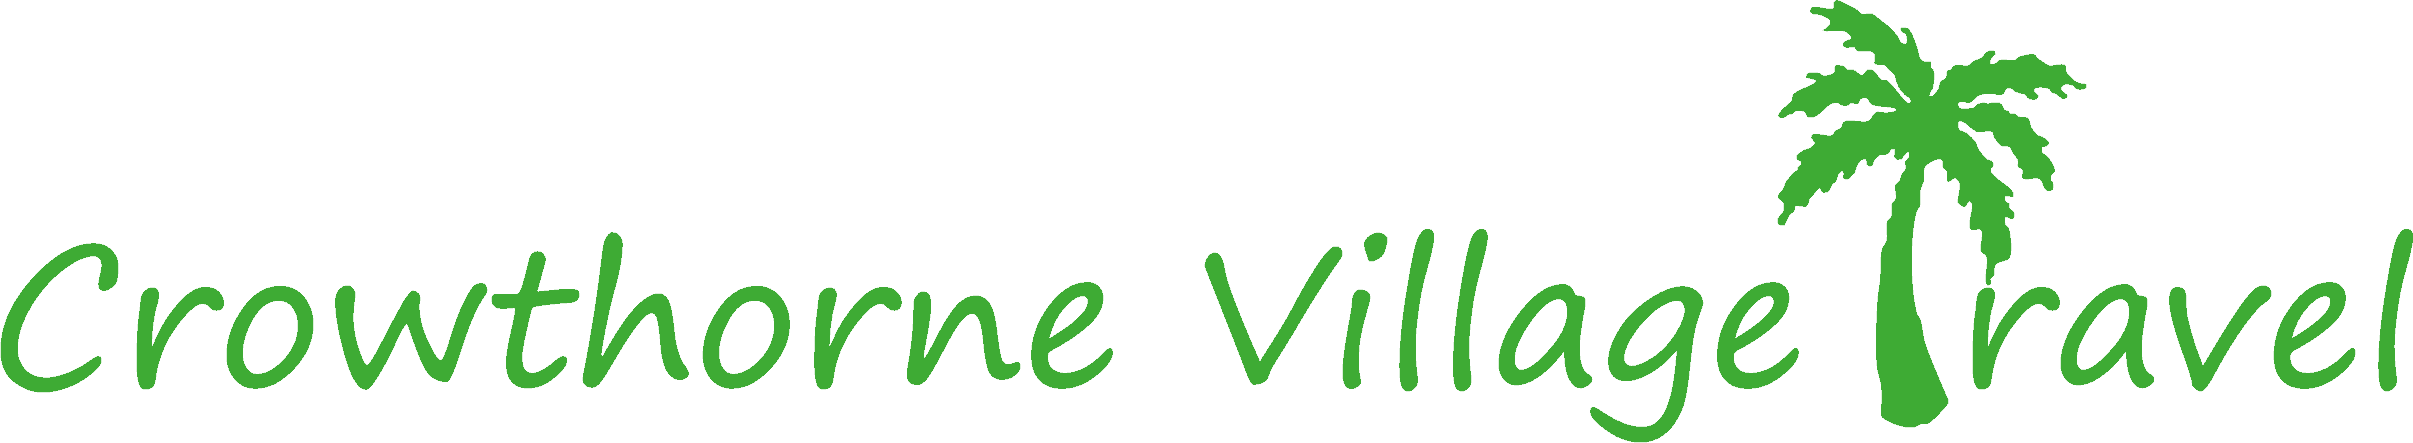 Crowthorne Village Travel Logo